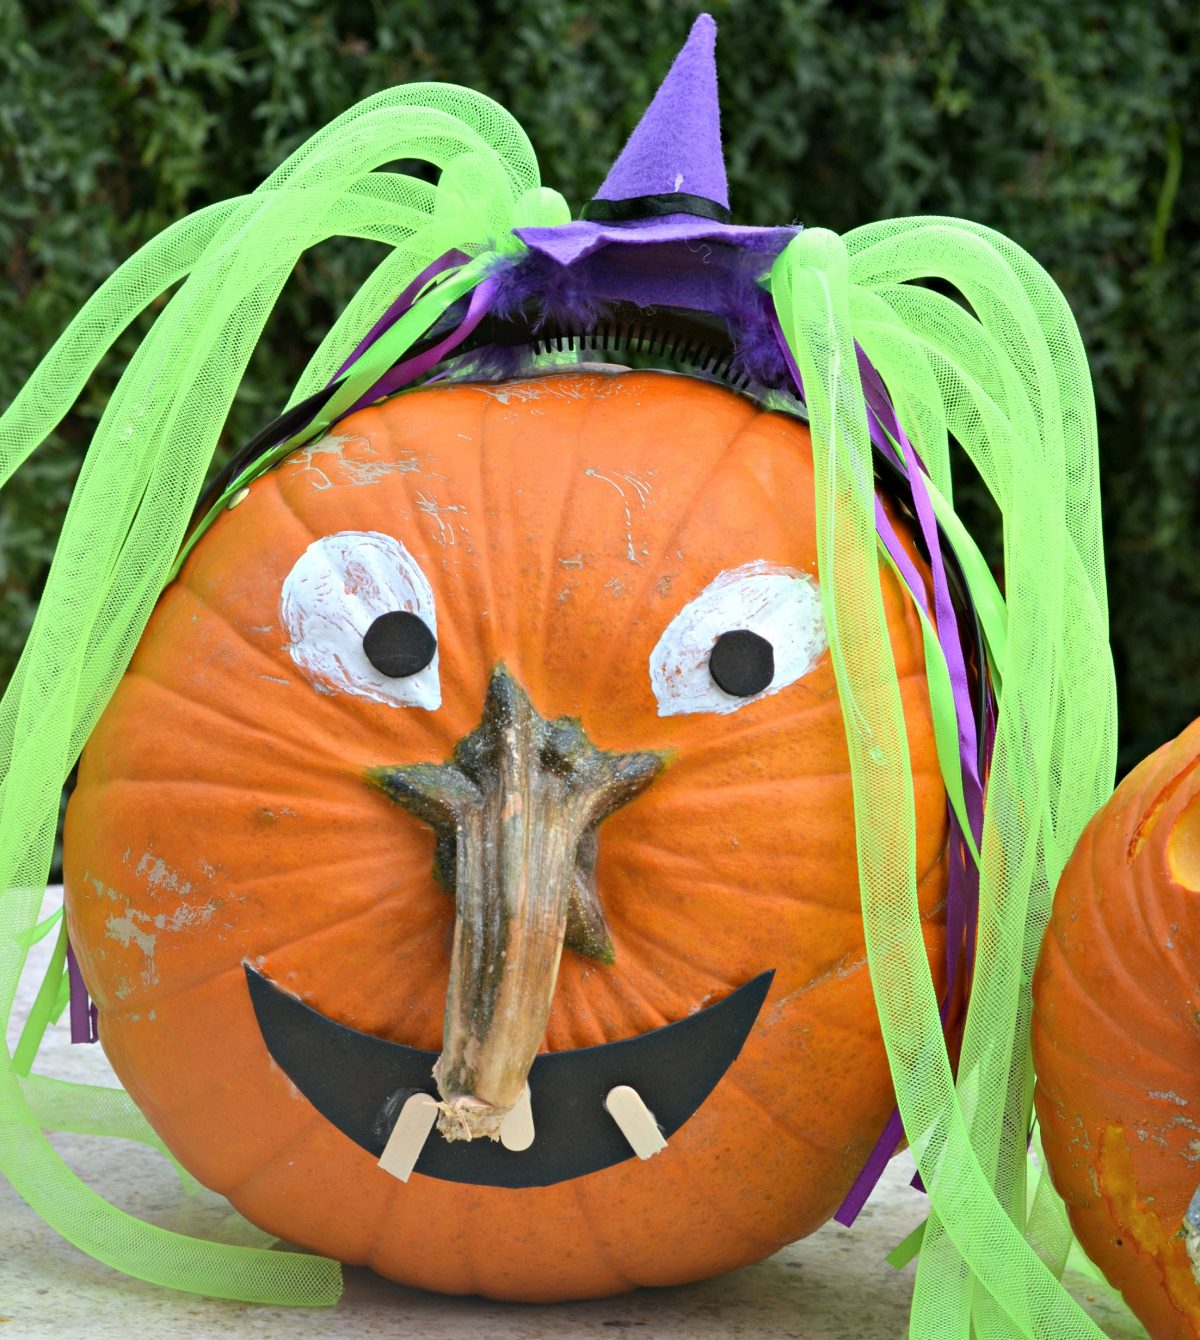 This Pumpkin Decorating Idea Is Genius Use The Stem As The Nose